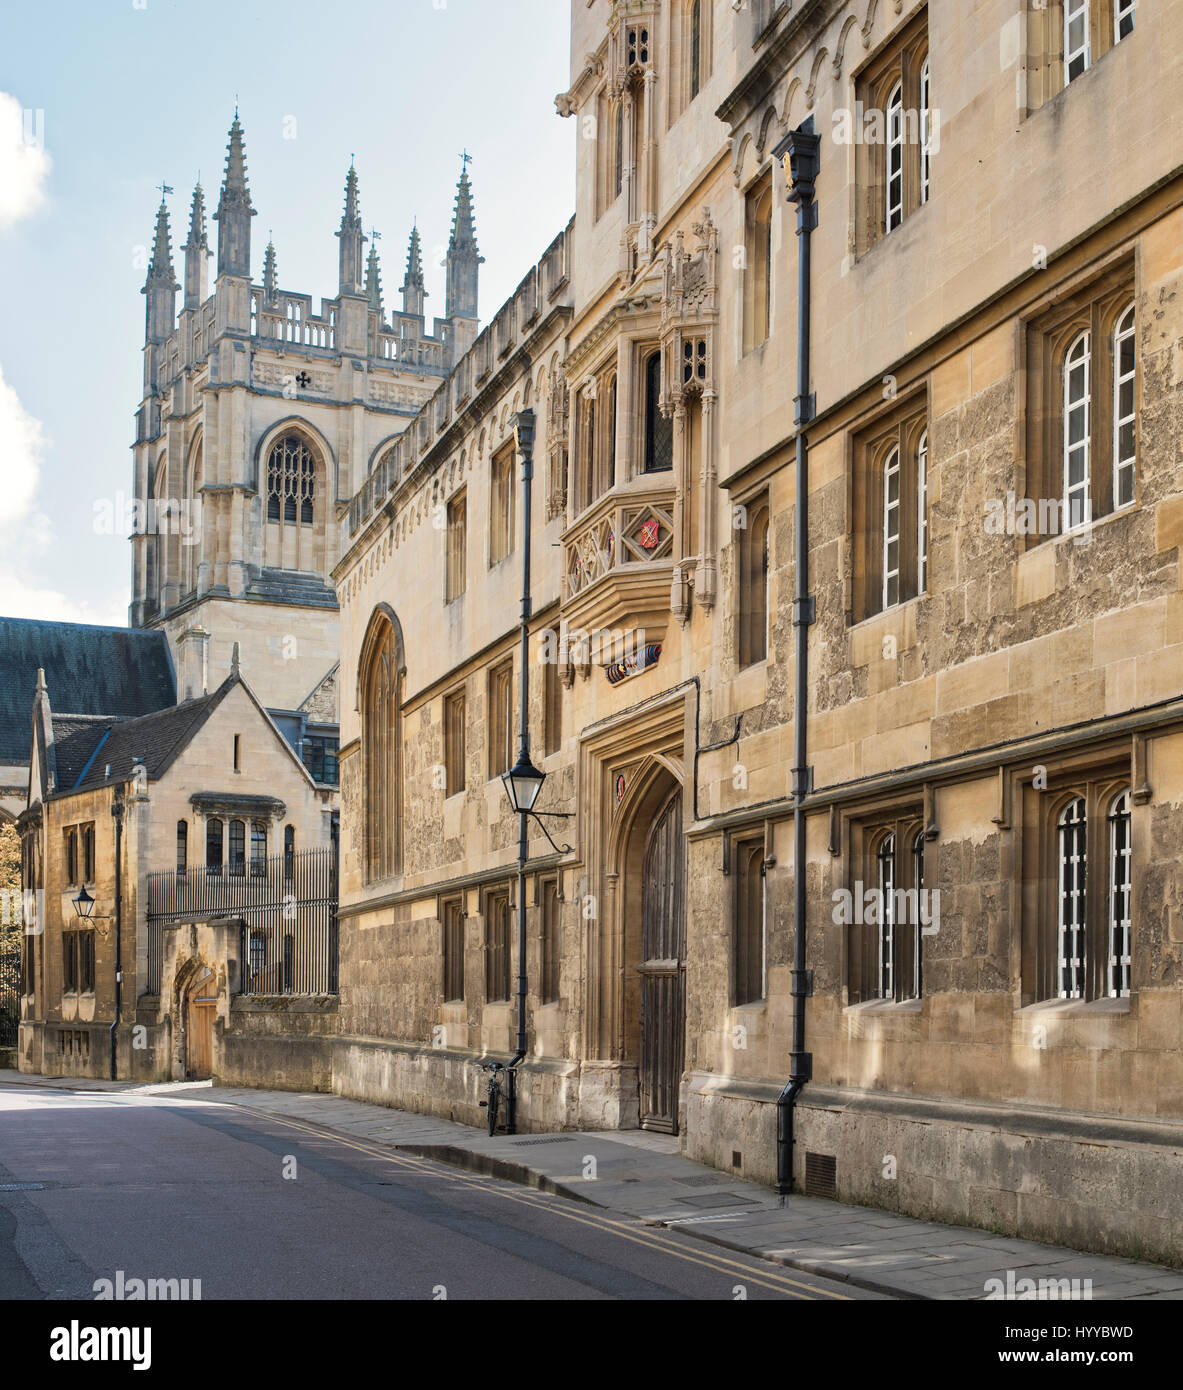 Merton Street showing Corpus Christi College and Merton college Chapel tower. Oxford, Oxfordshire, UK - Stock Image